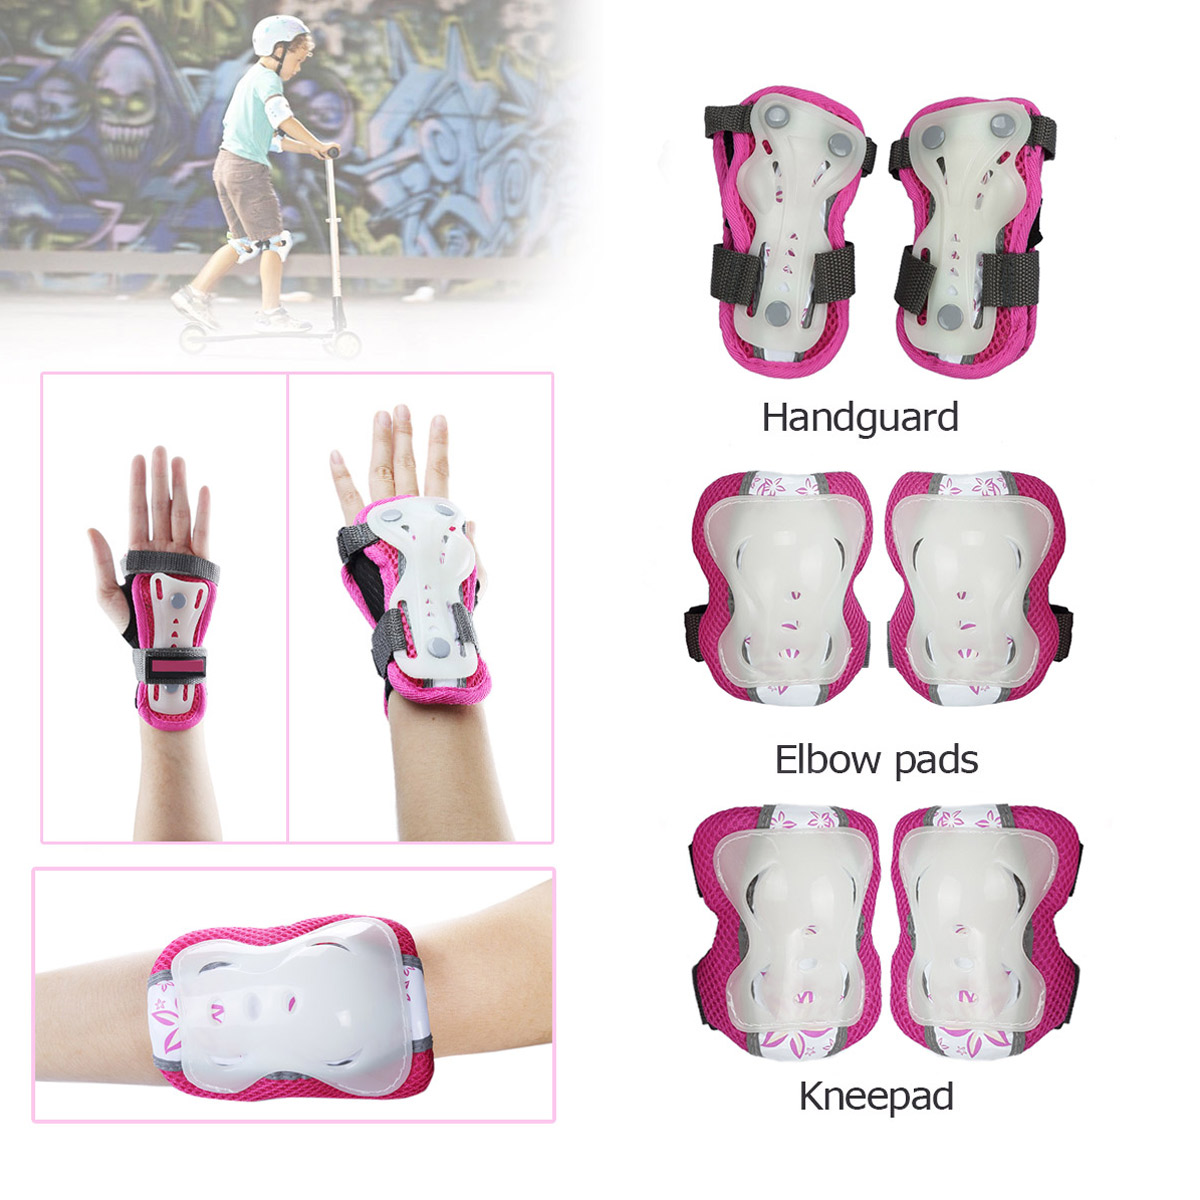 CoastaCloud Wrist Elbow Knee Pads 6PCS Skateboard Safety Outdoors Sports for Kid's Children Boys Girls Protective Gear... by CoastaCloud